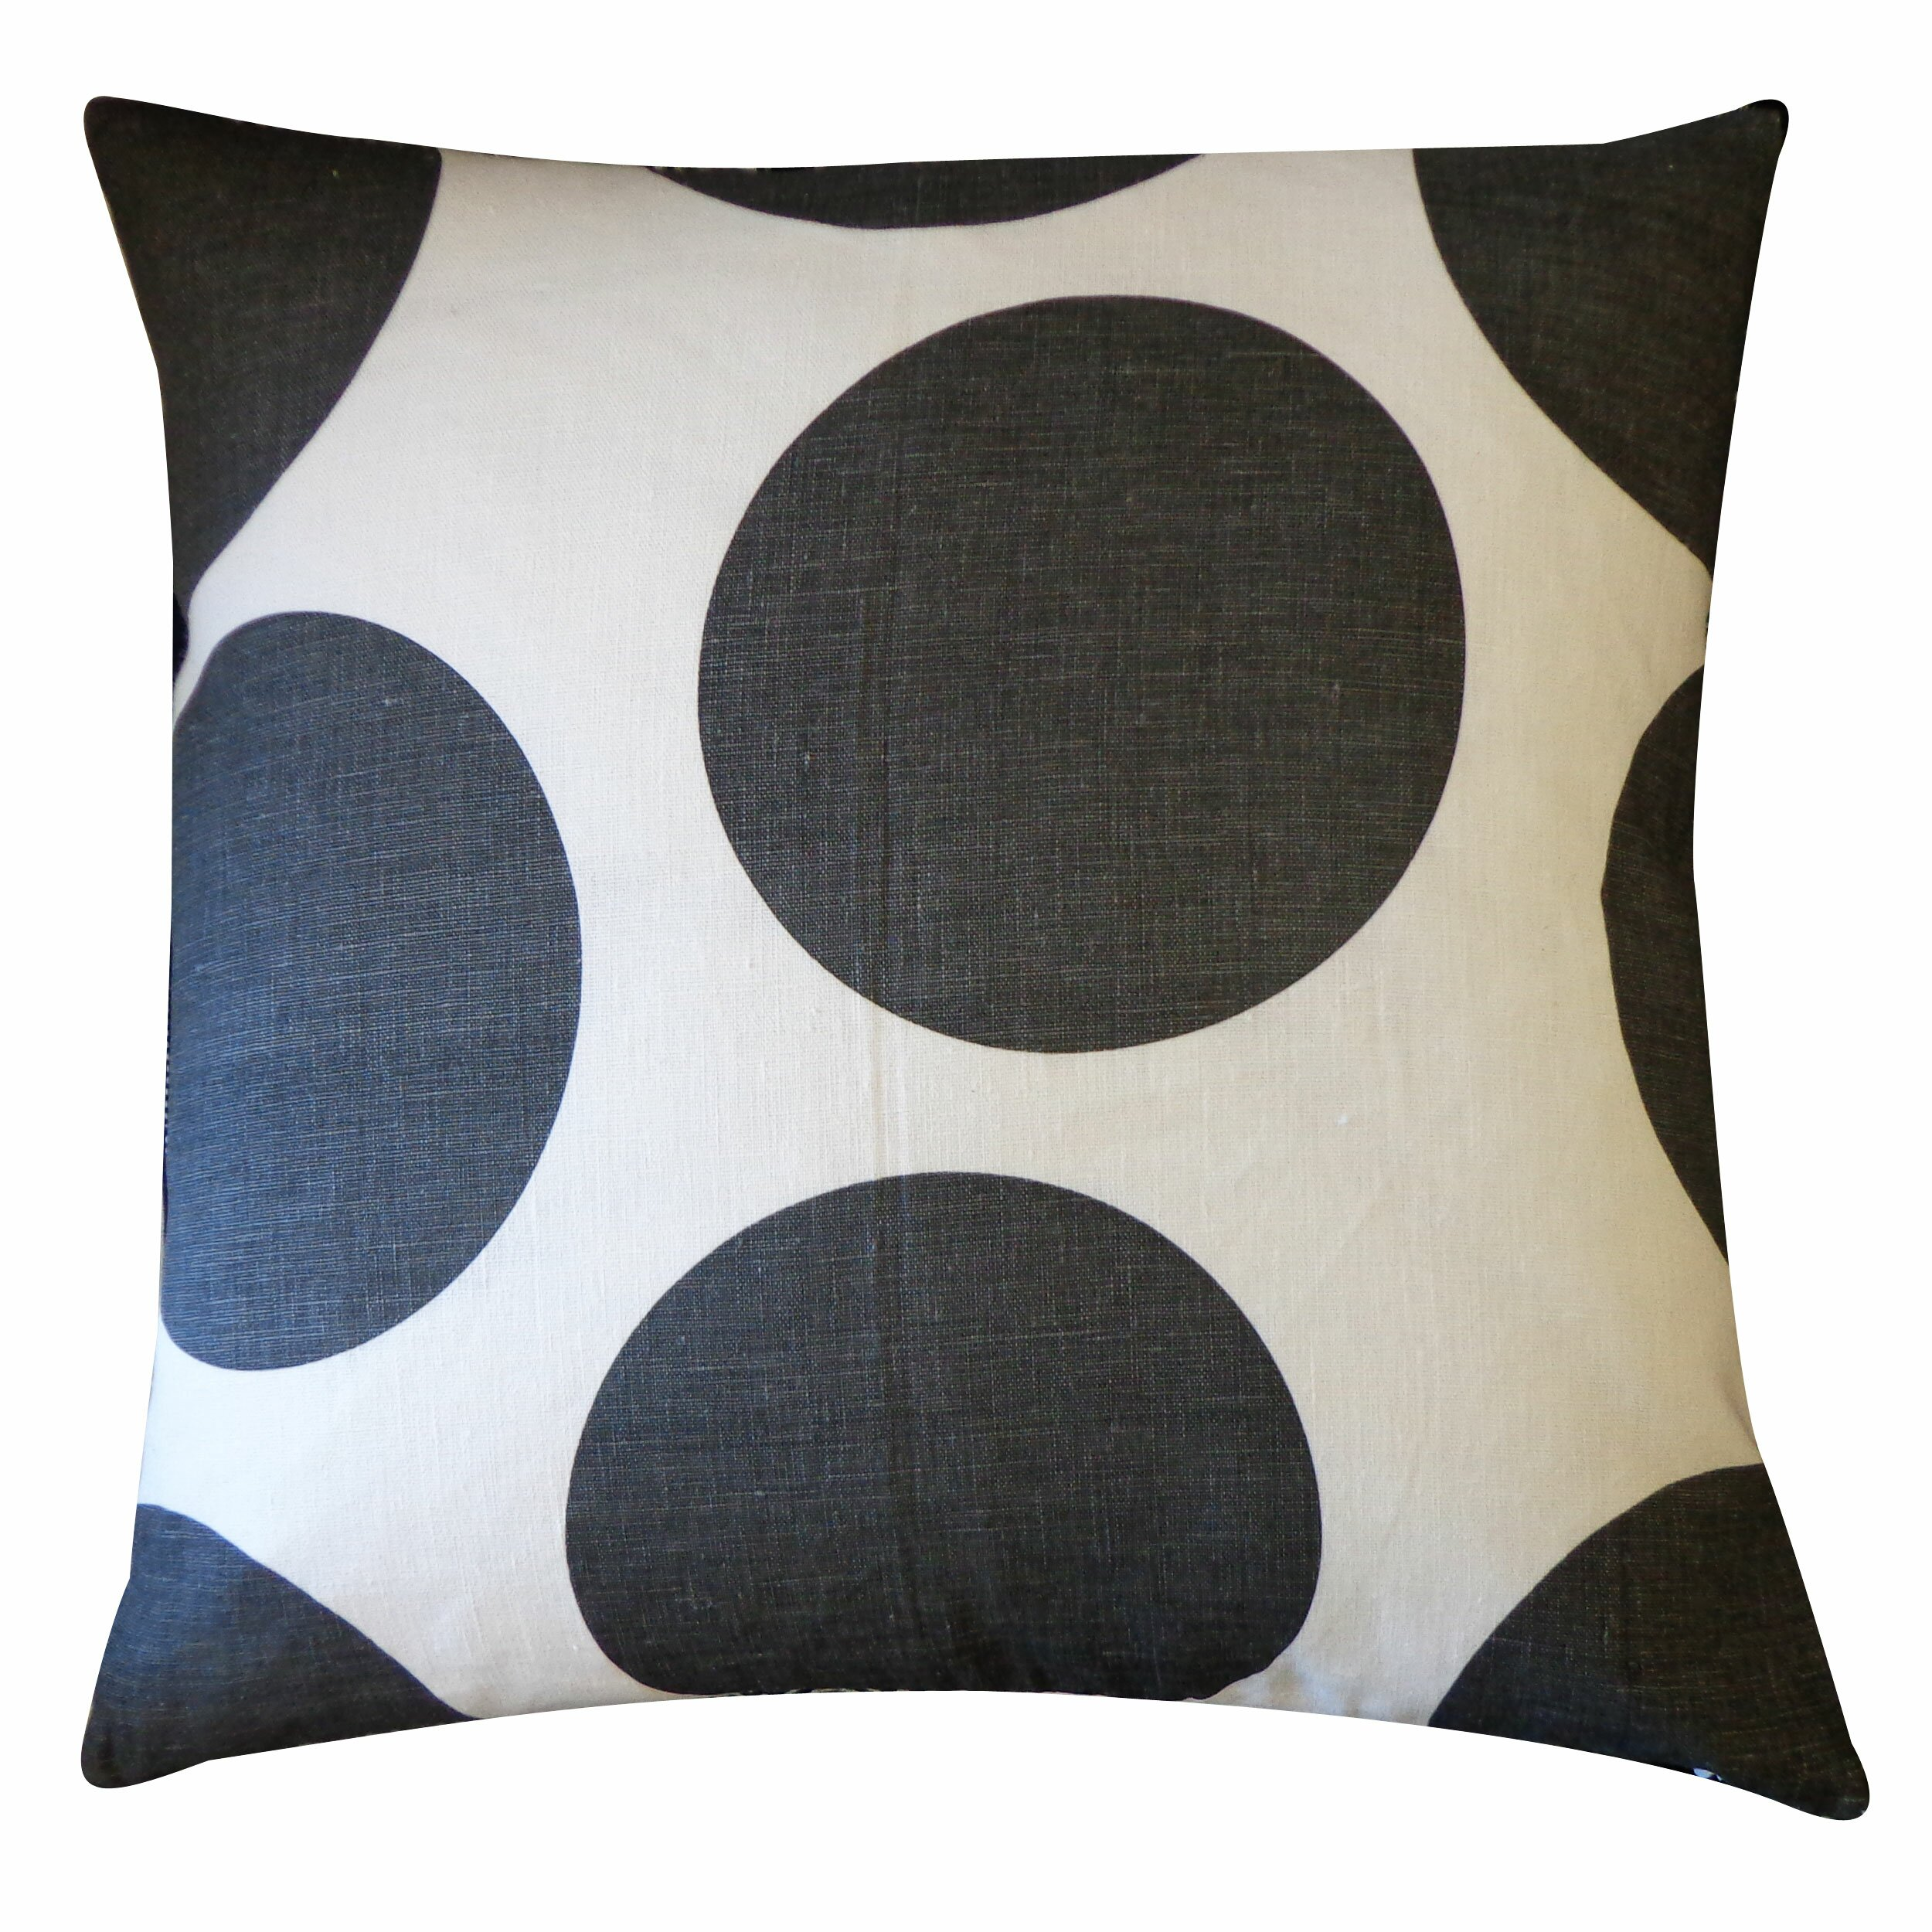 Jiti Decorative Pillows : Jiti Ball Cotton Throw Pillow & Reviews Wayfair